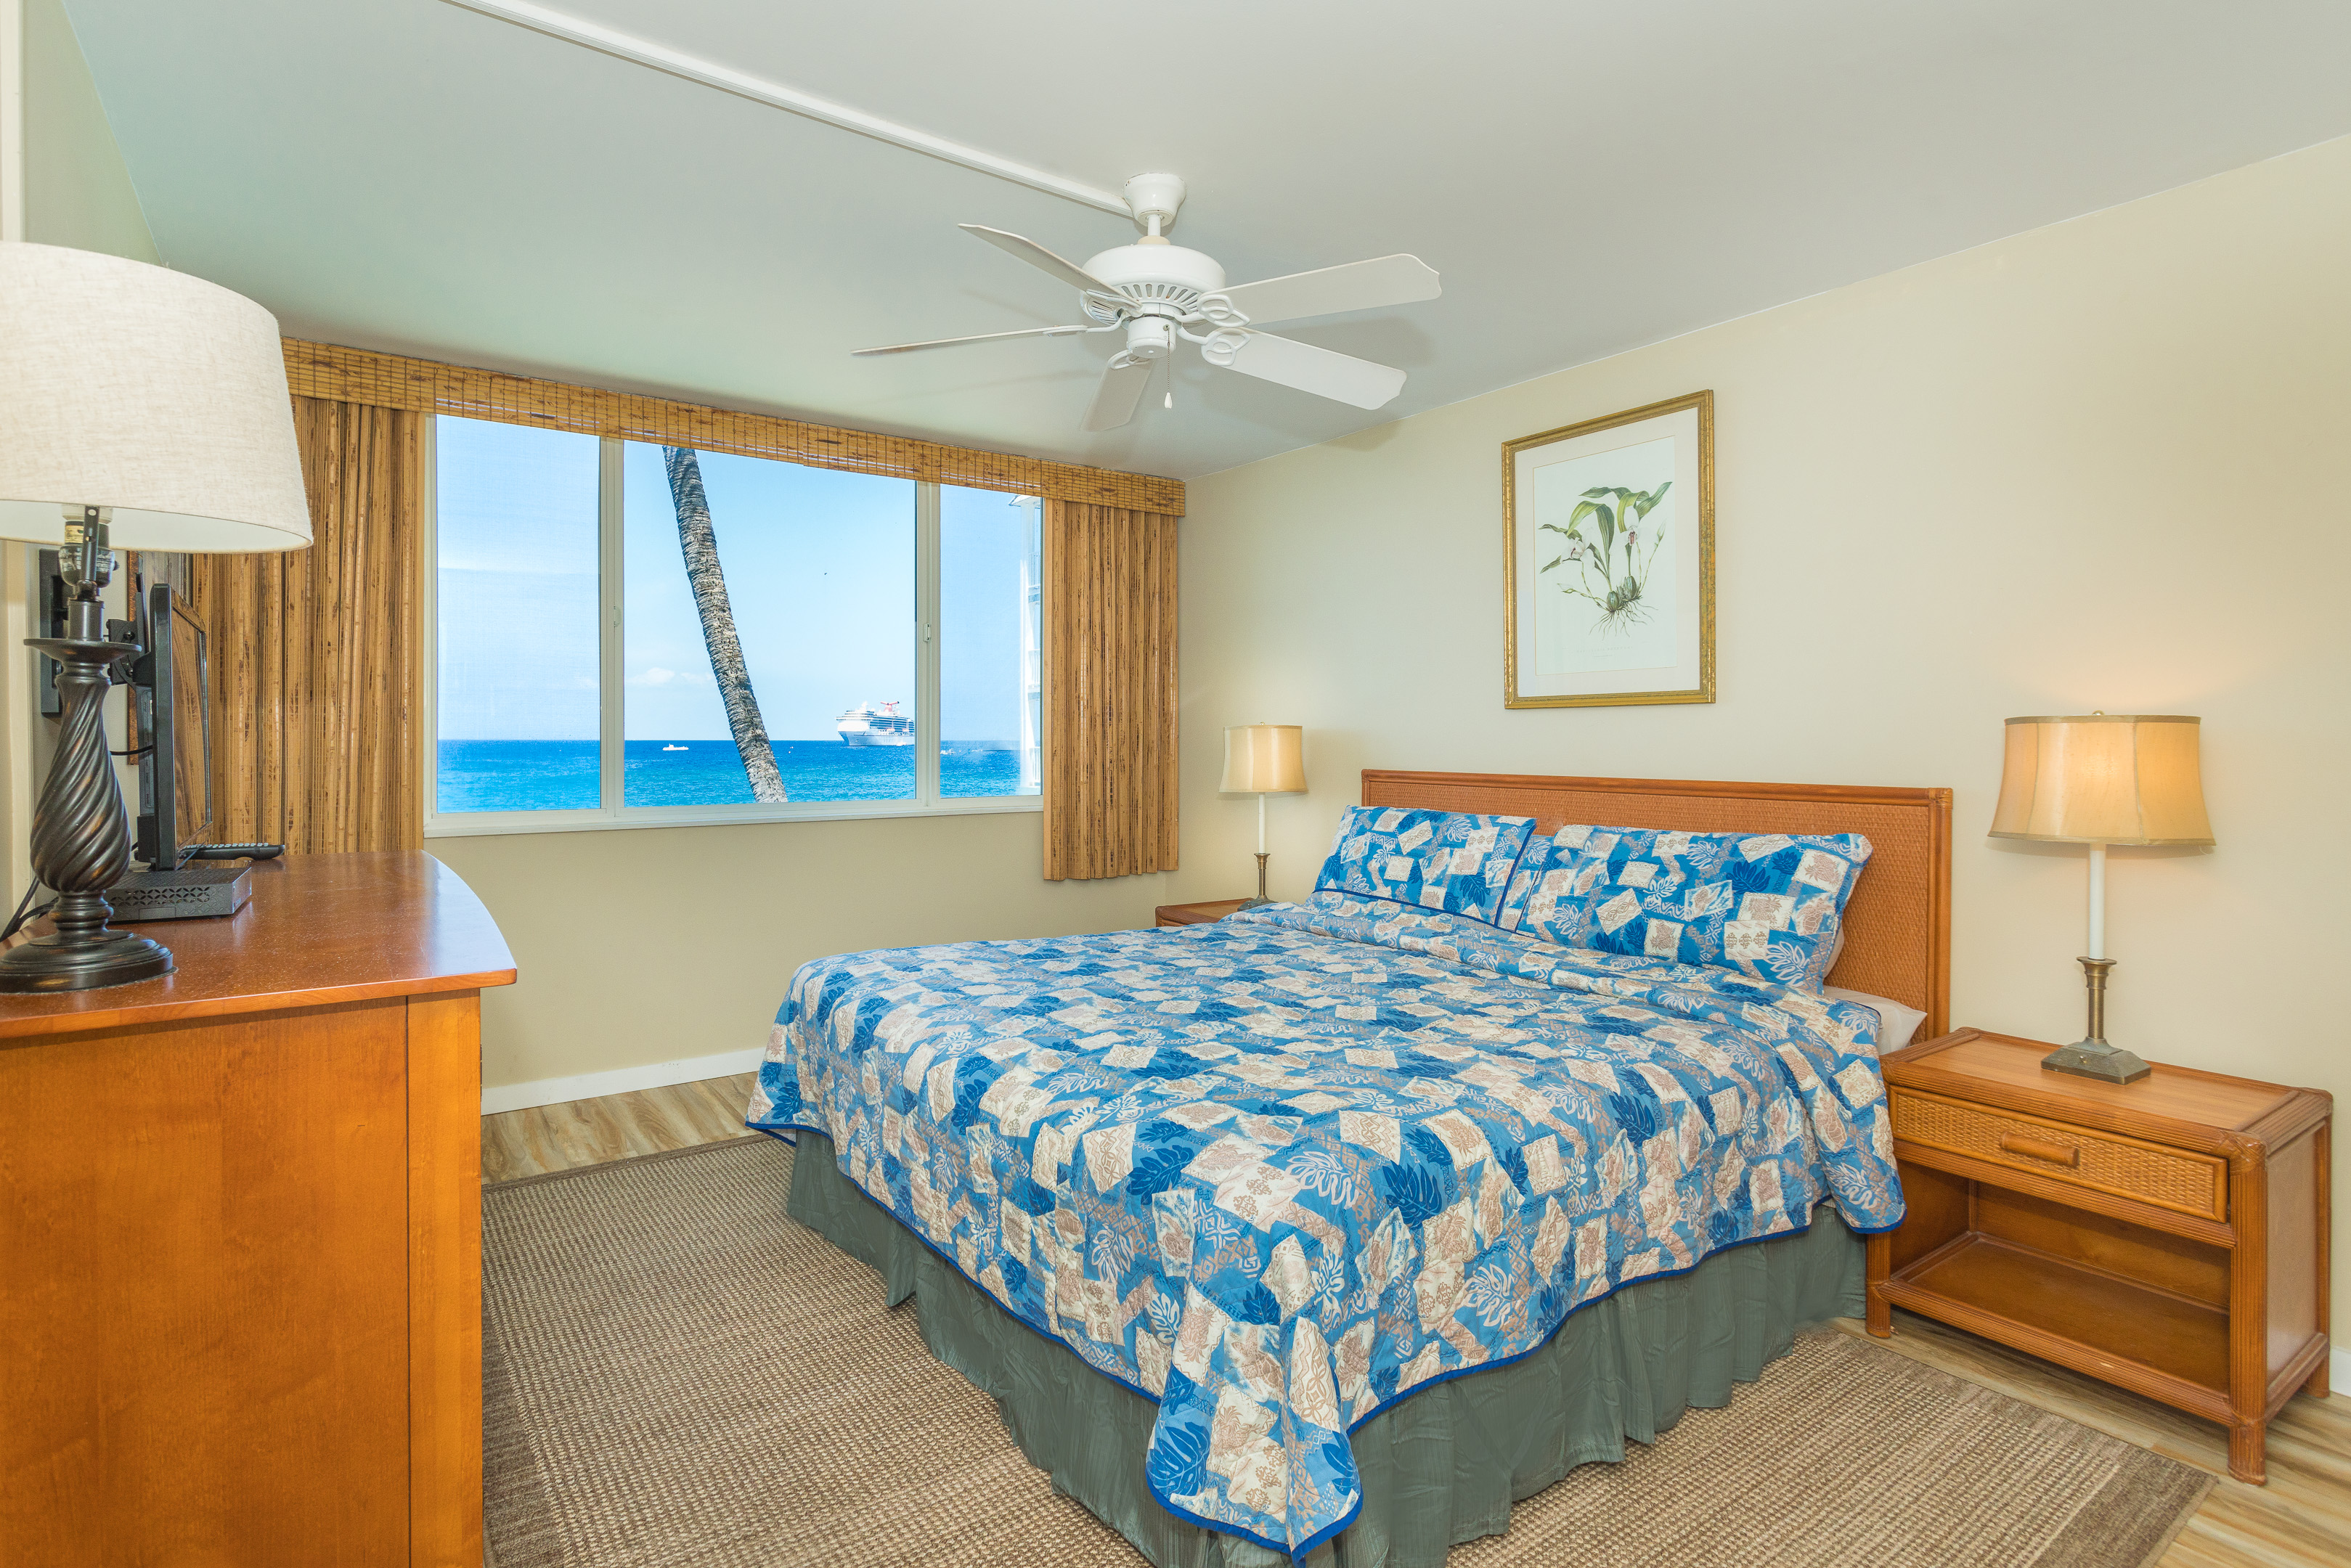 Oceanfront view from your master bedroom let the waves lull you to sleep.